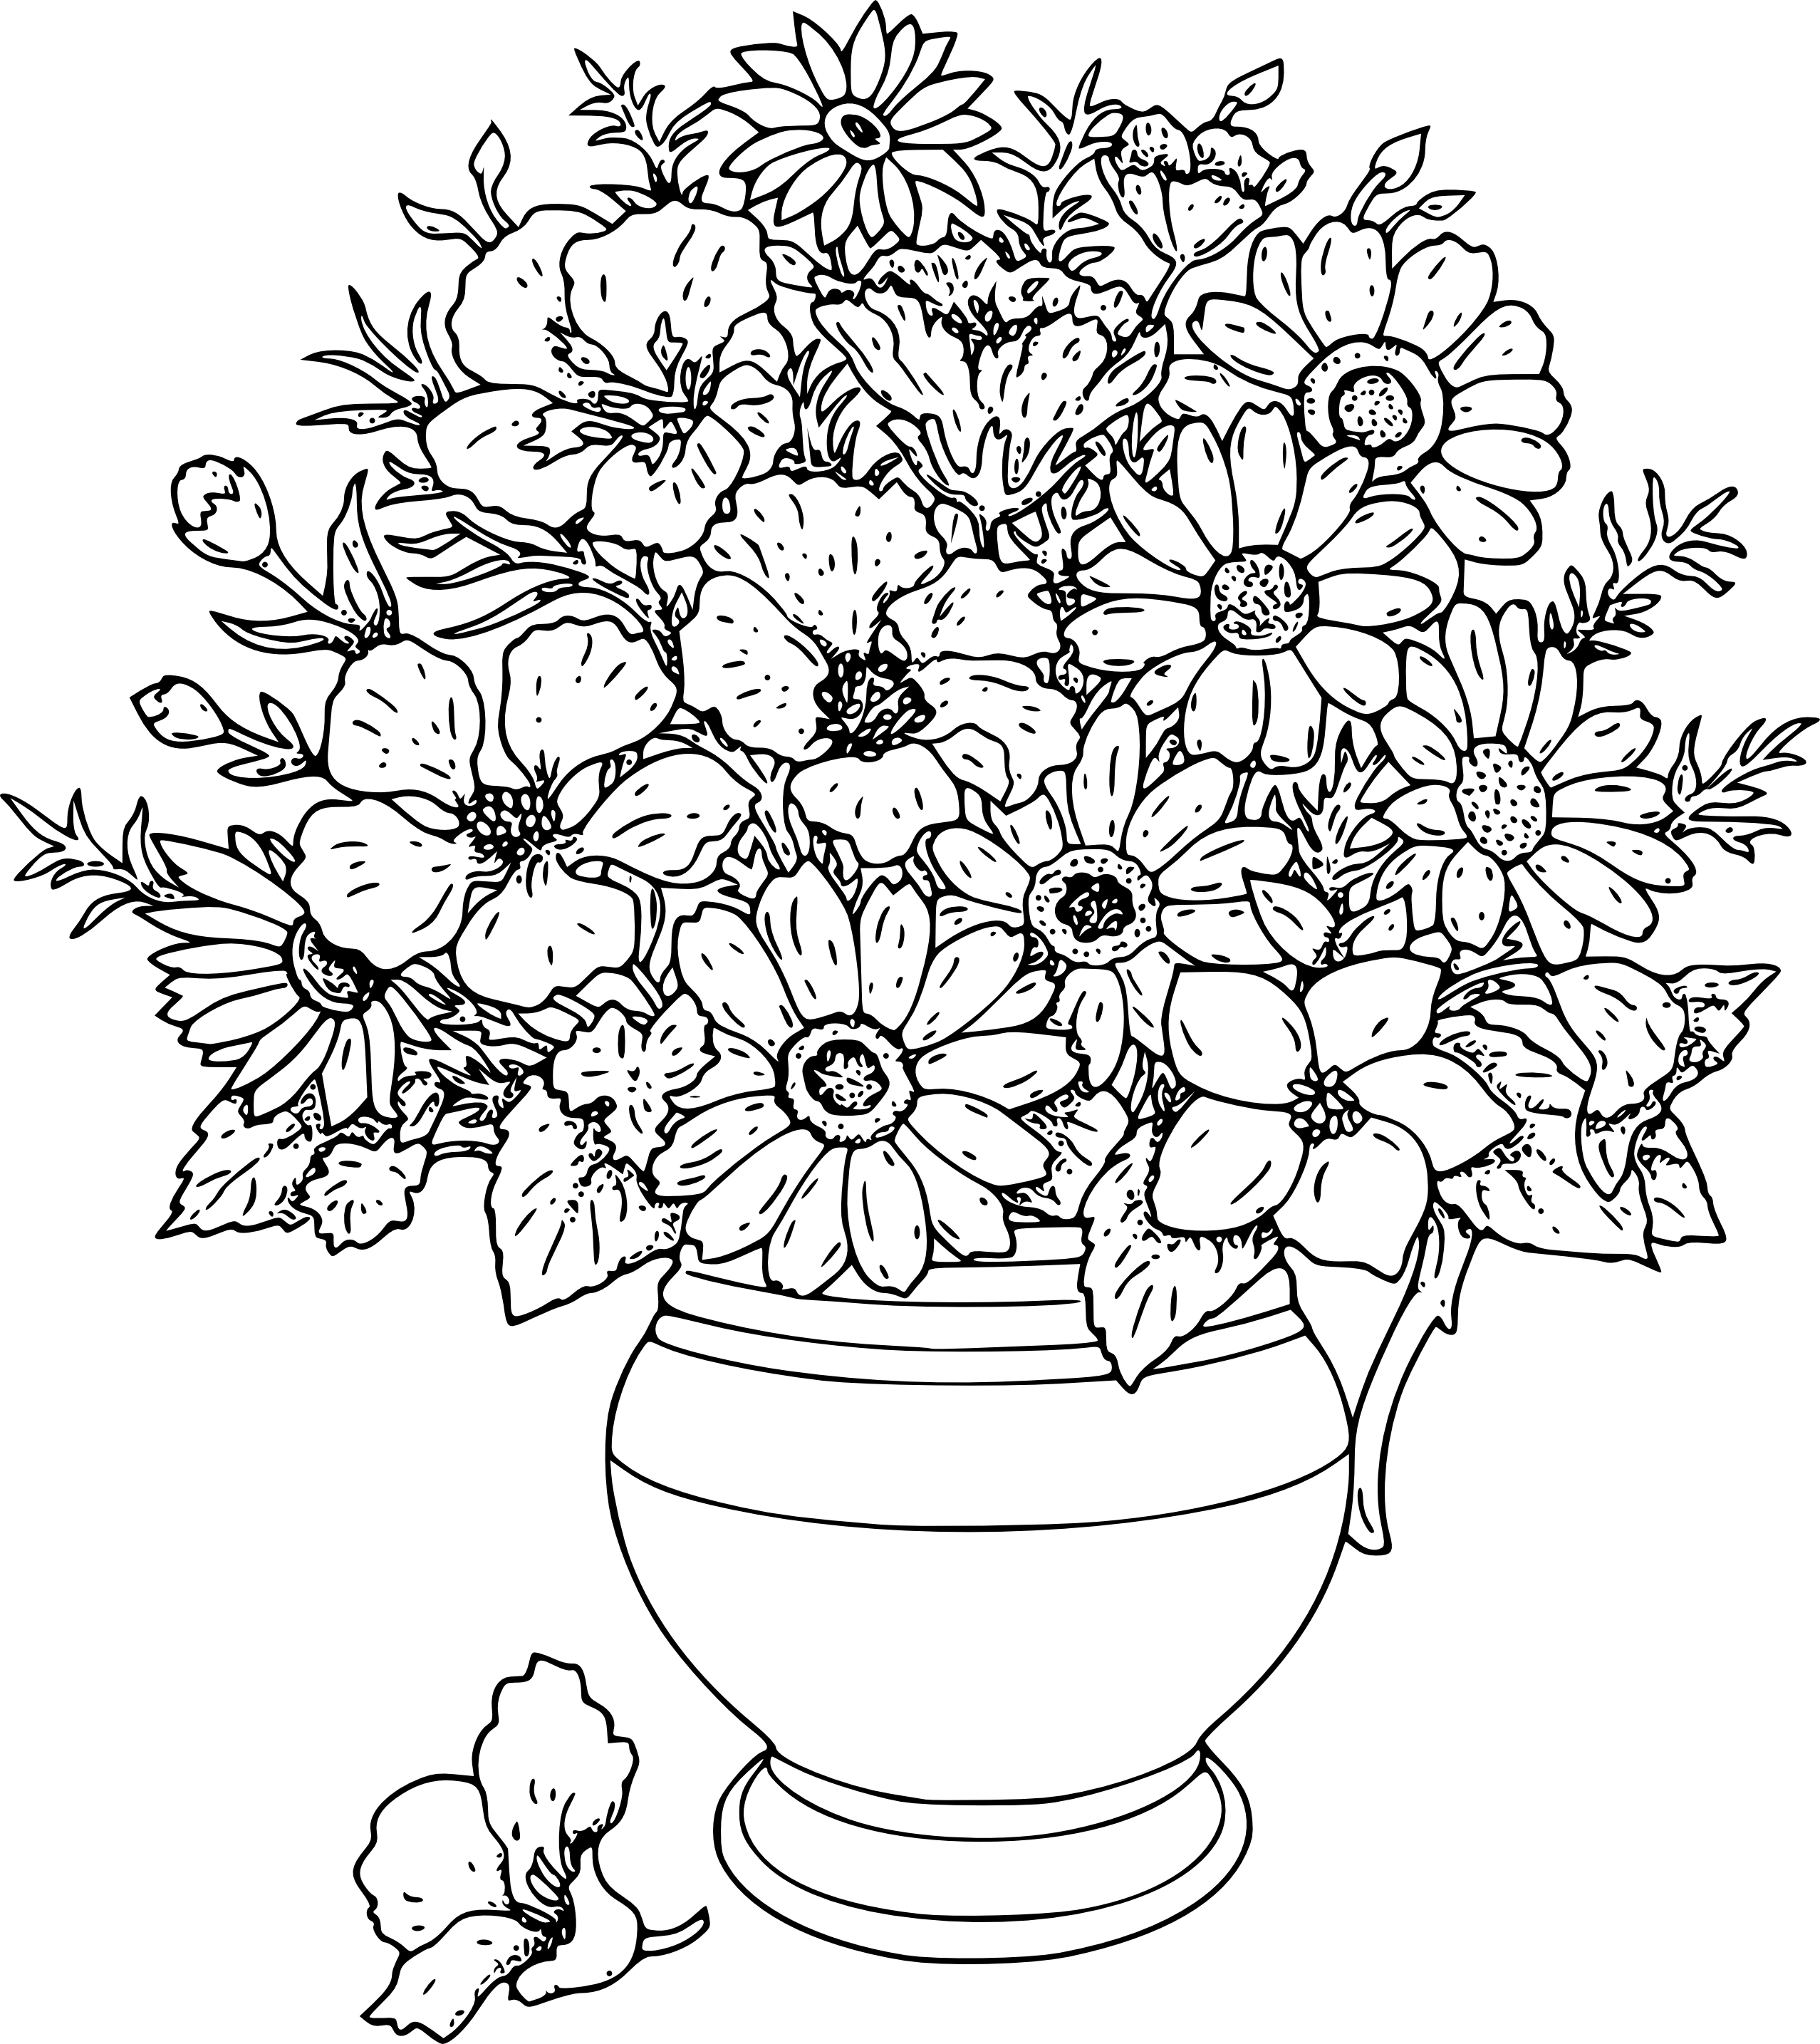 2555x2869 Flowers Line Drawing Images